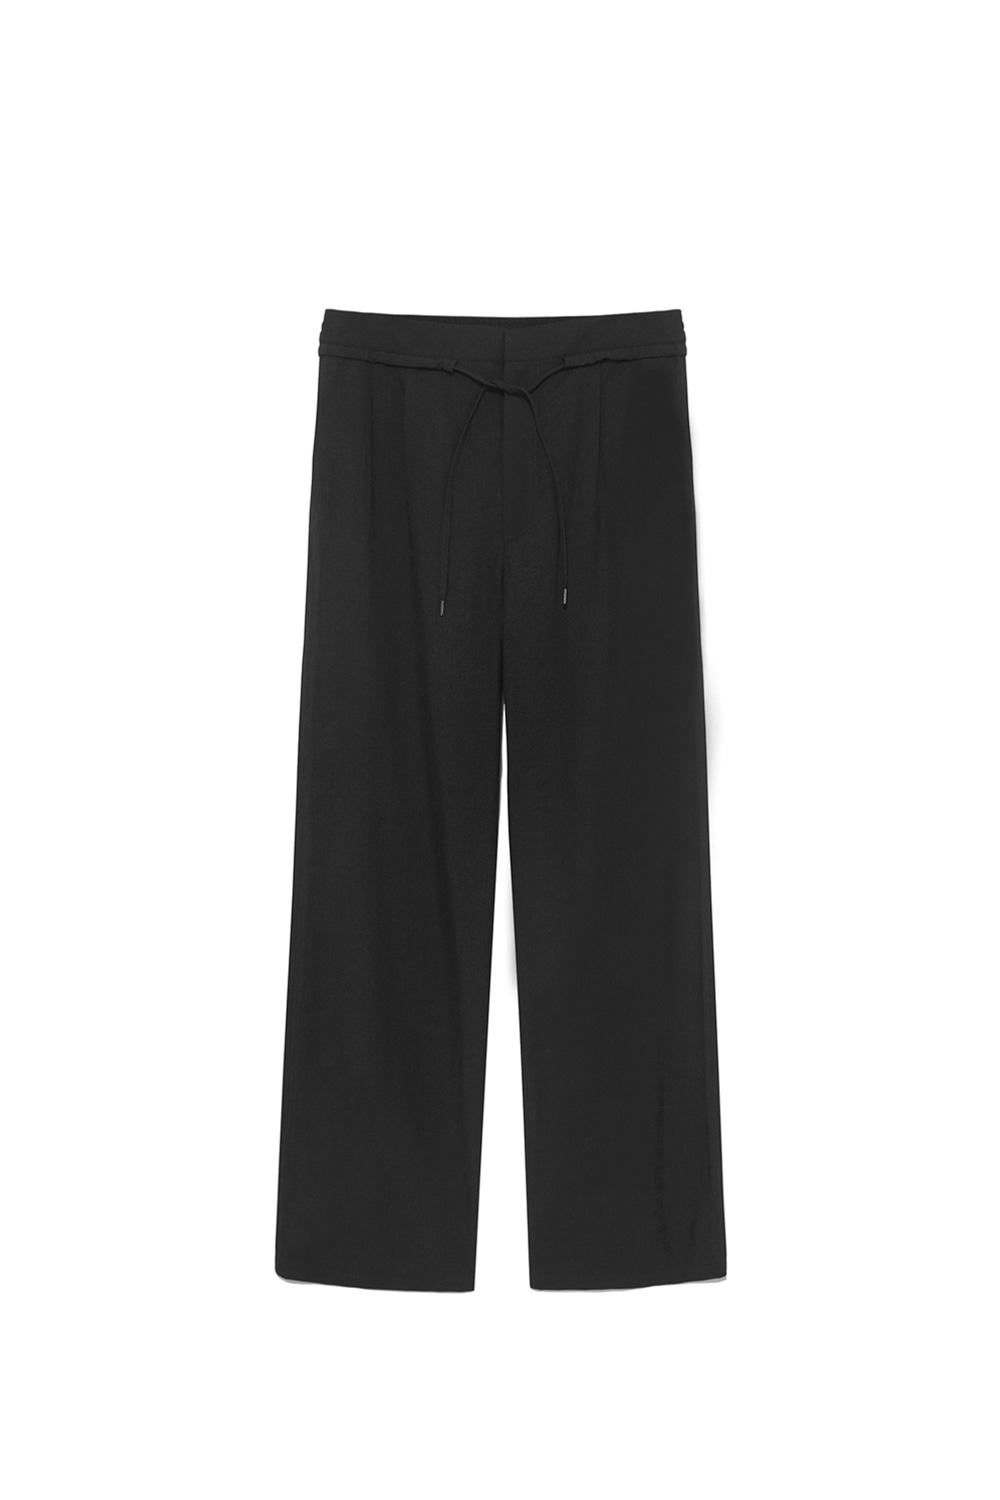 Summer Pants Men [Black]